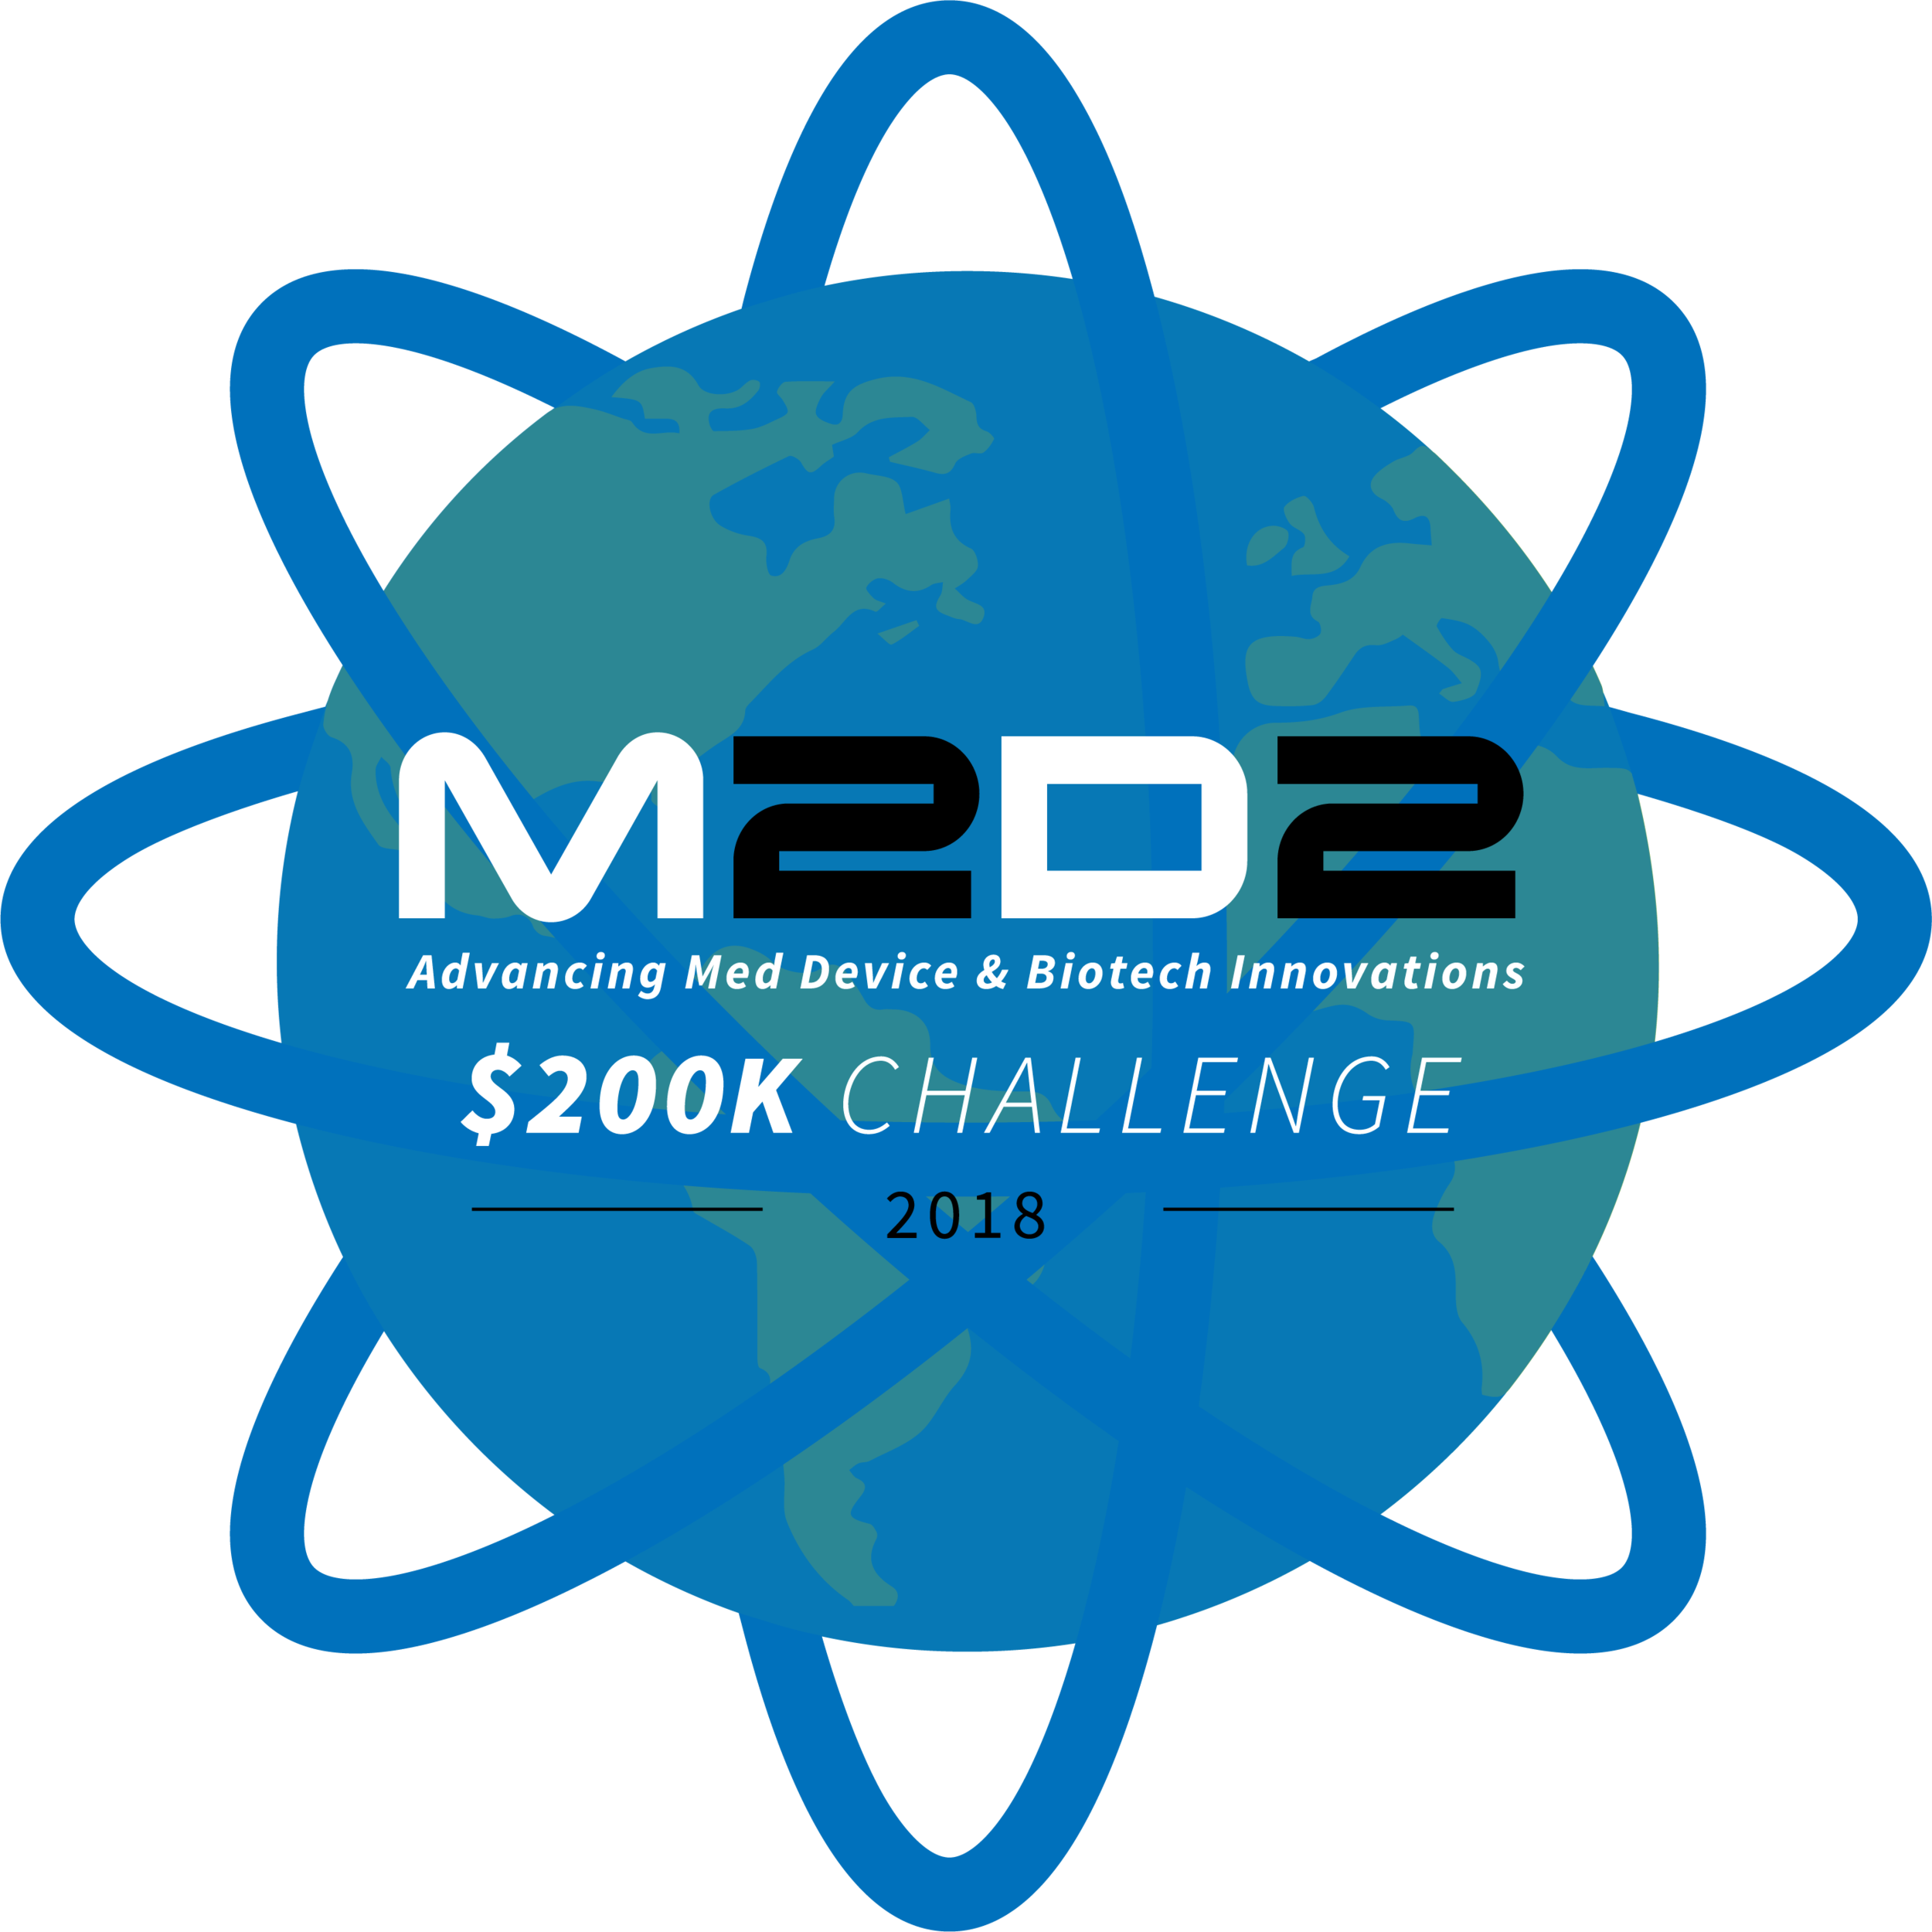 1ST PLACE WINNER $200K COMPETITION 2018,